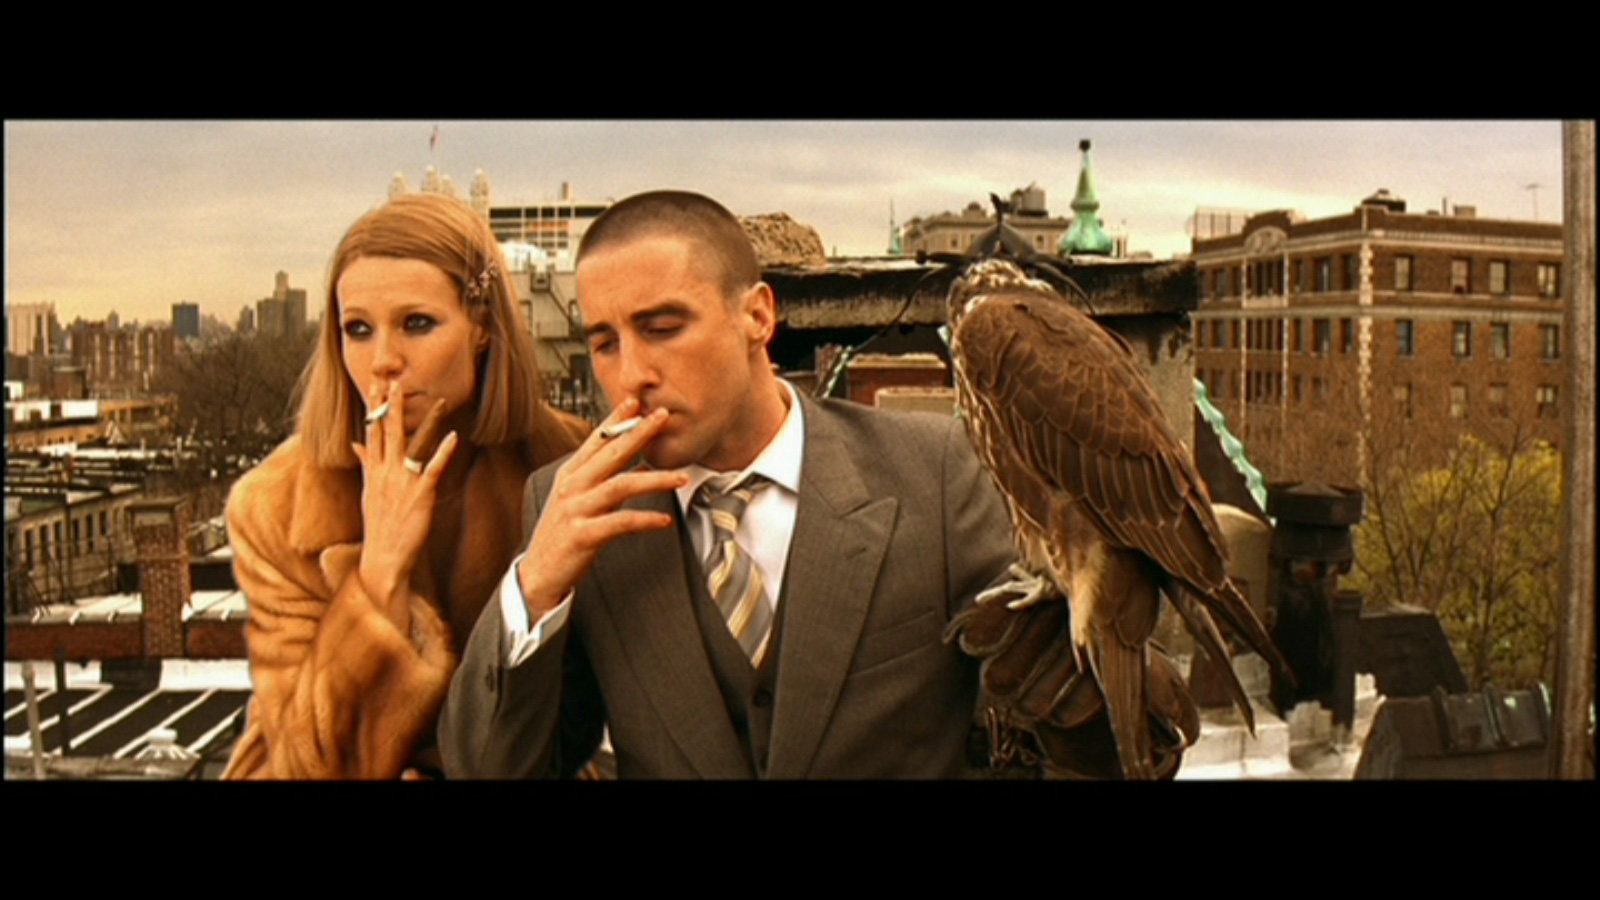 luke wilson cinema sips image credit touchtone pictures 2001 the royal tenenbaums